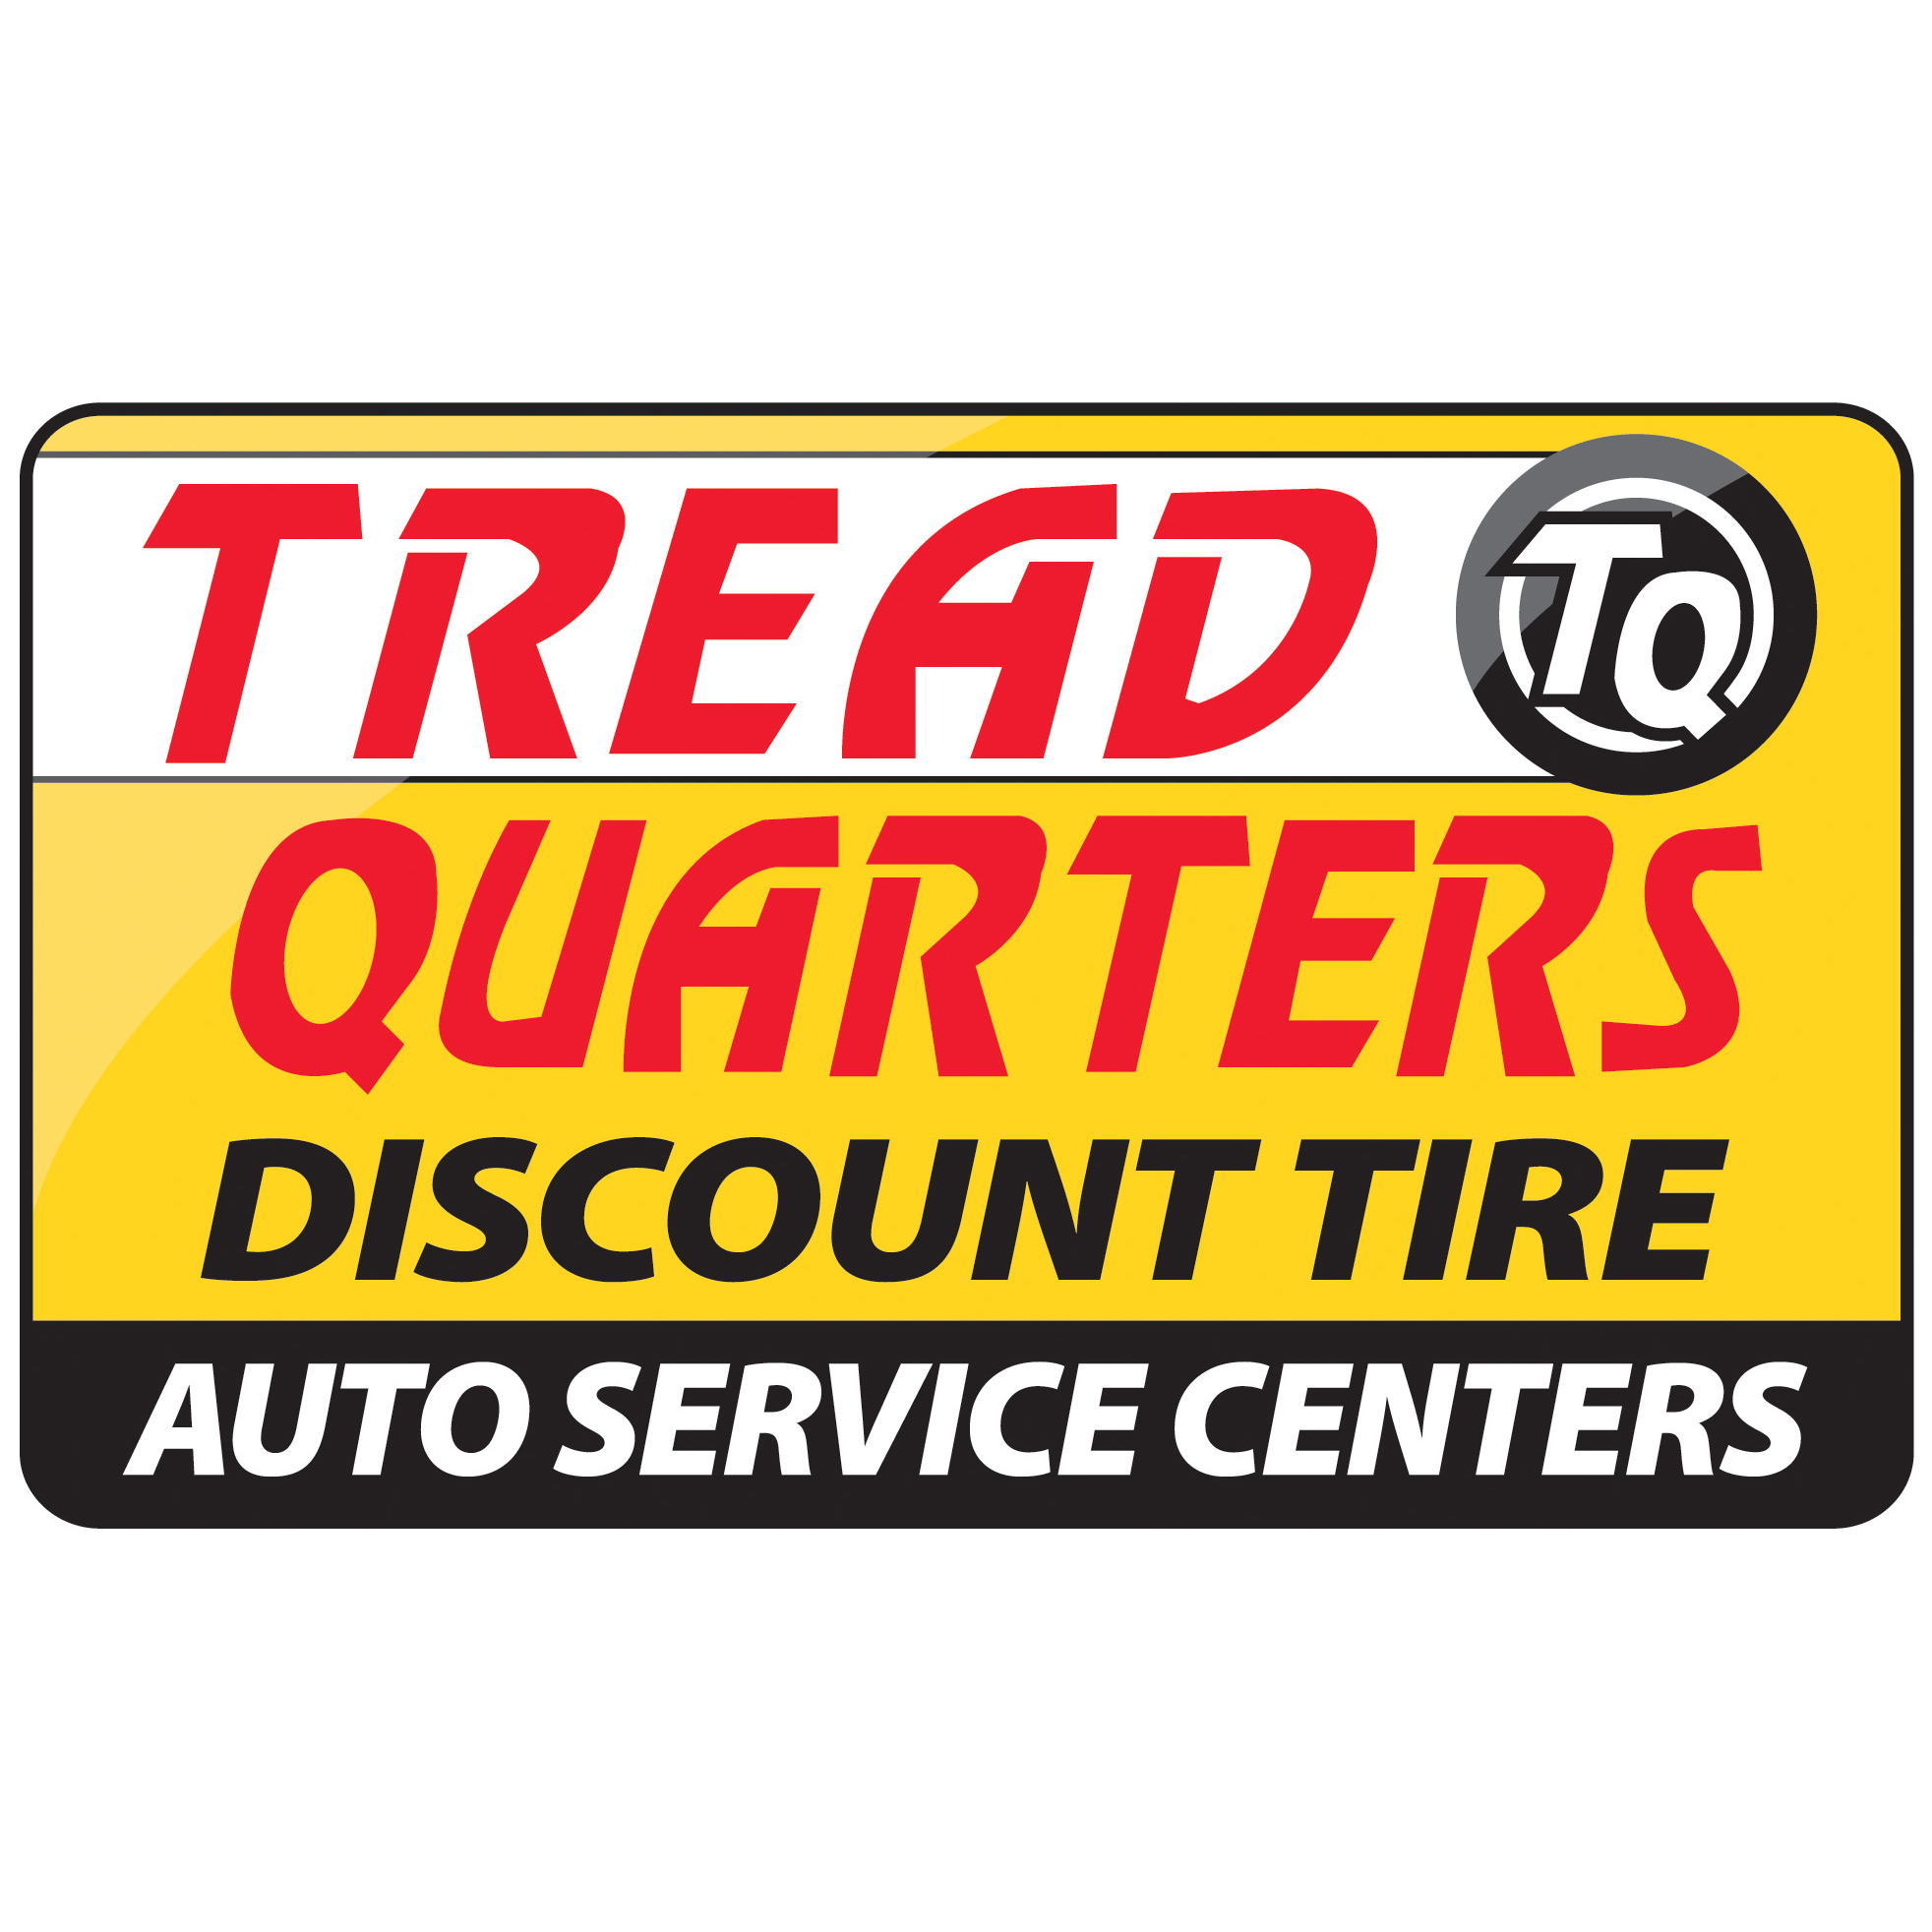 Tread Quarters